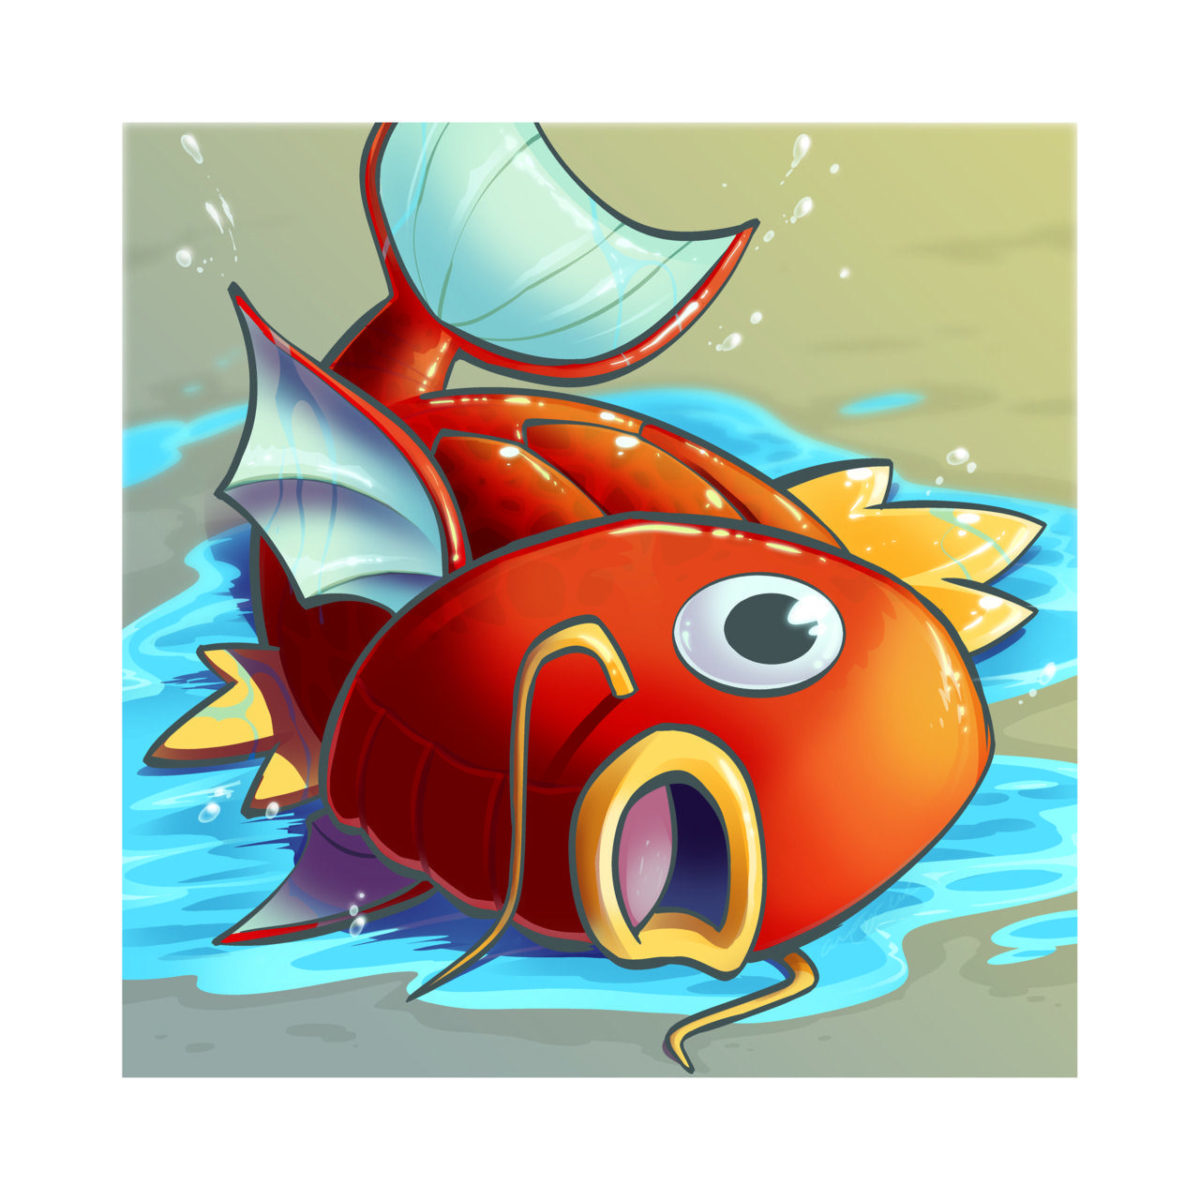 Tuesday 25th August 2015 Magikarp HD Backgrounds for PC ⇔ Full …